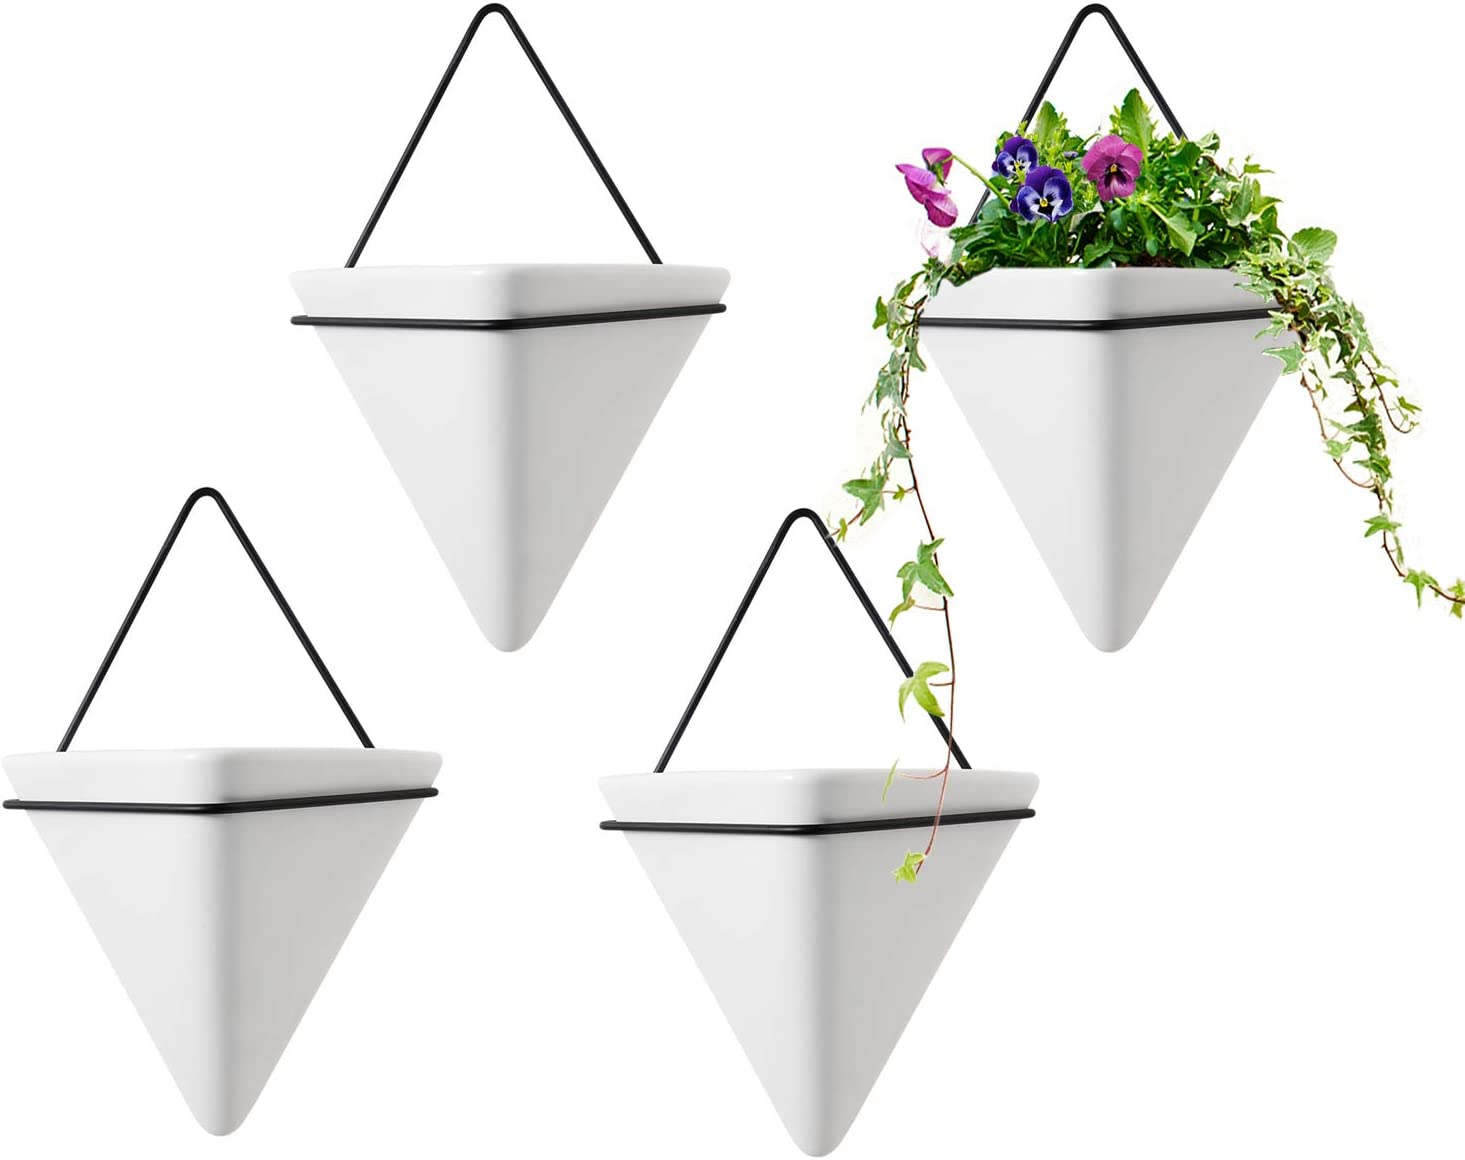 T4U Triangle Wall Planter, Set of 4 Hanging Planter Vase & Geometric Planter Wall Decor Air Plant Container for Home and Office Decoration Birthday Wedding Gift (Small, White)